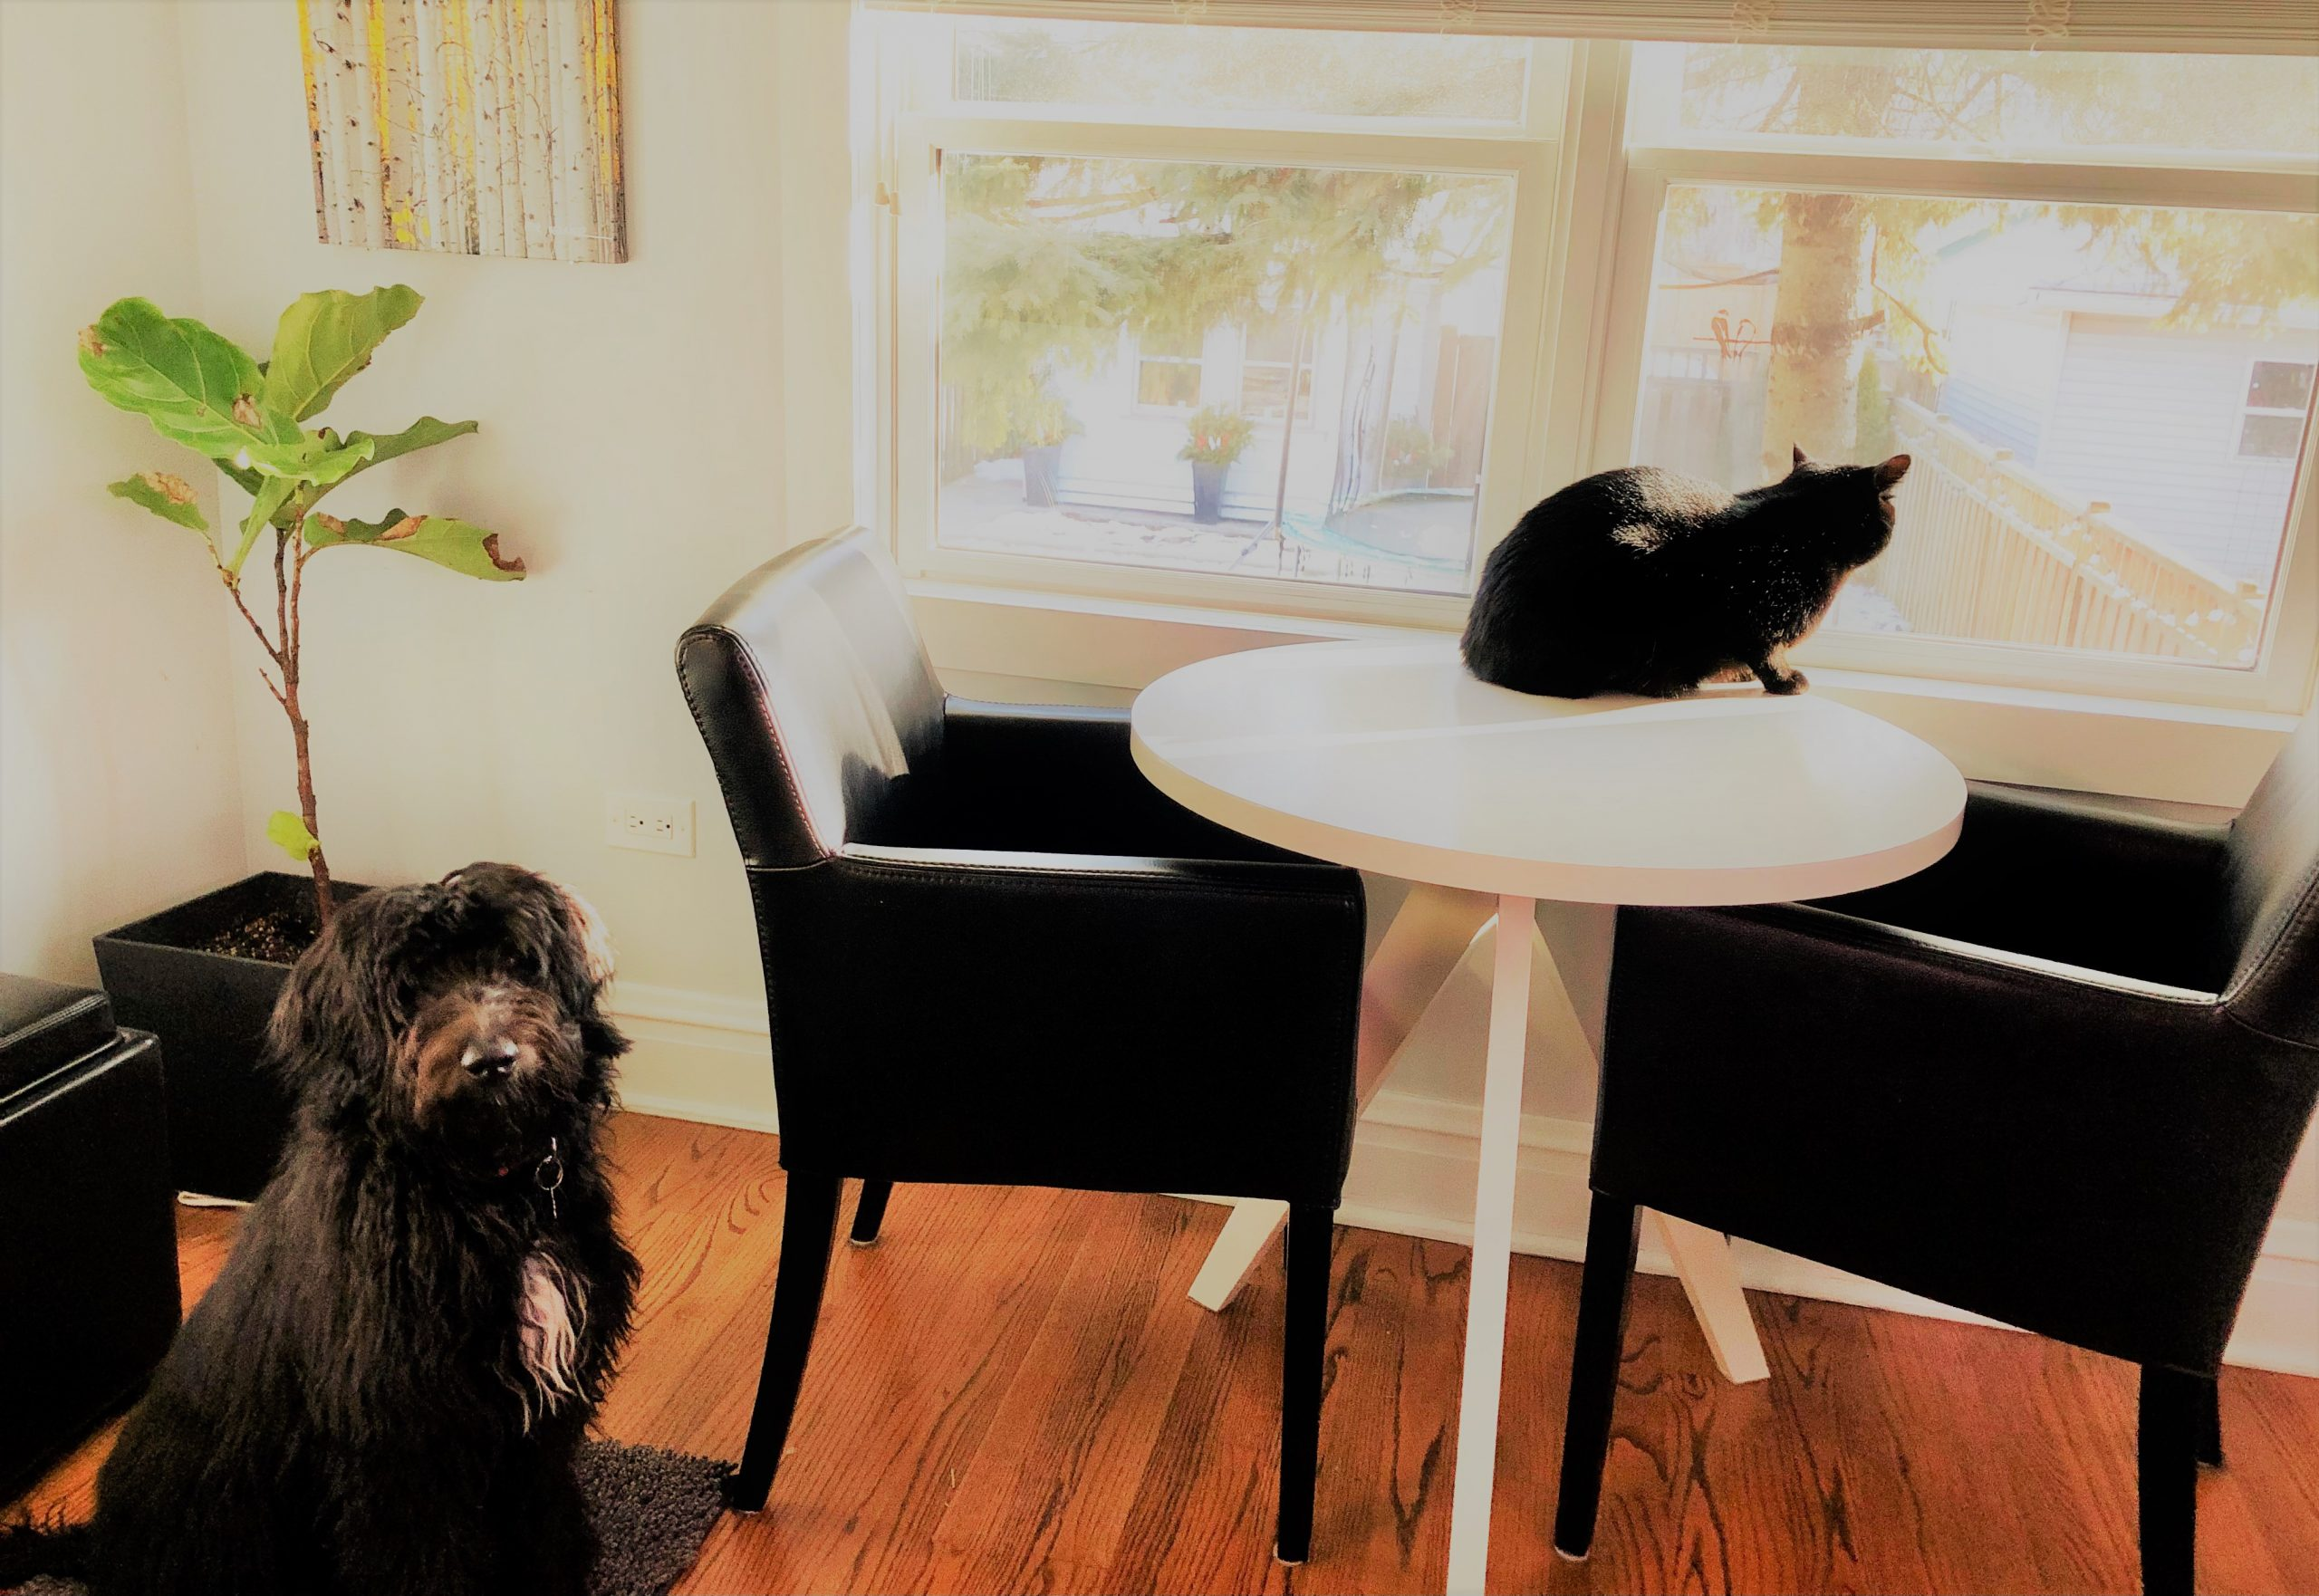 A black and white Bordoodle puppy watching a cat on a table.